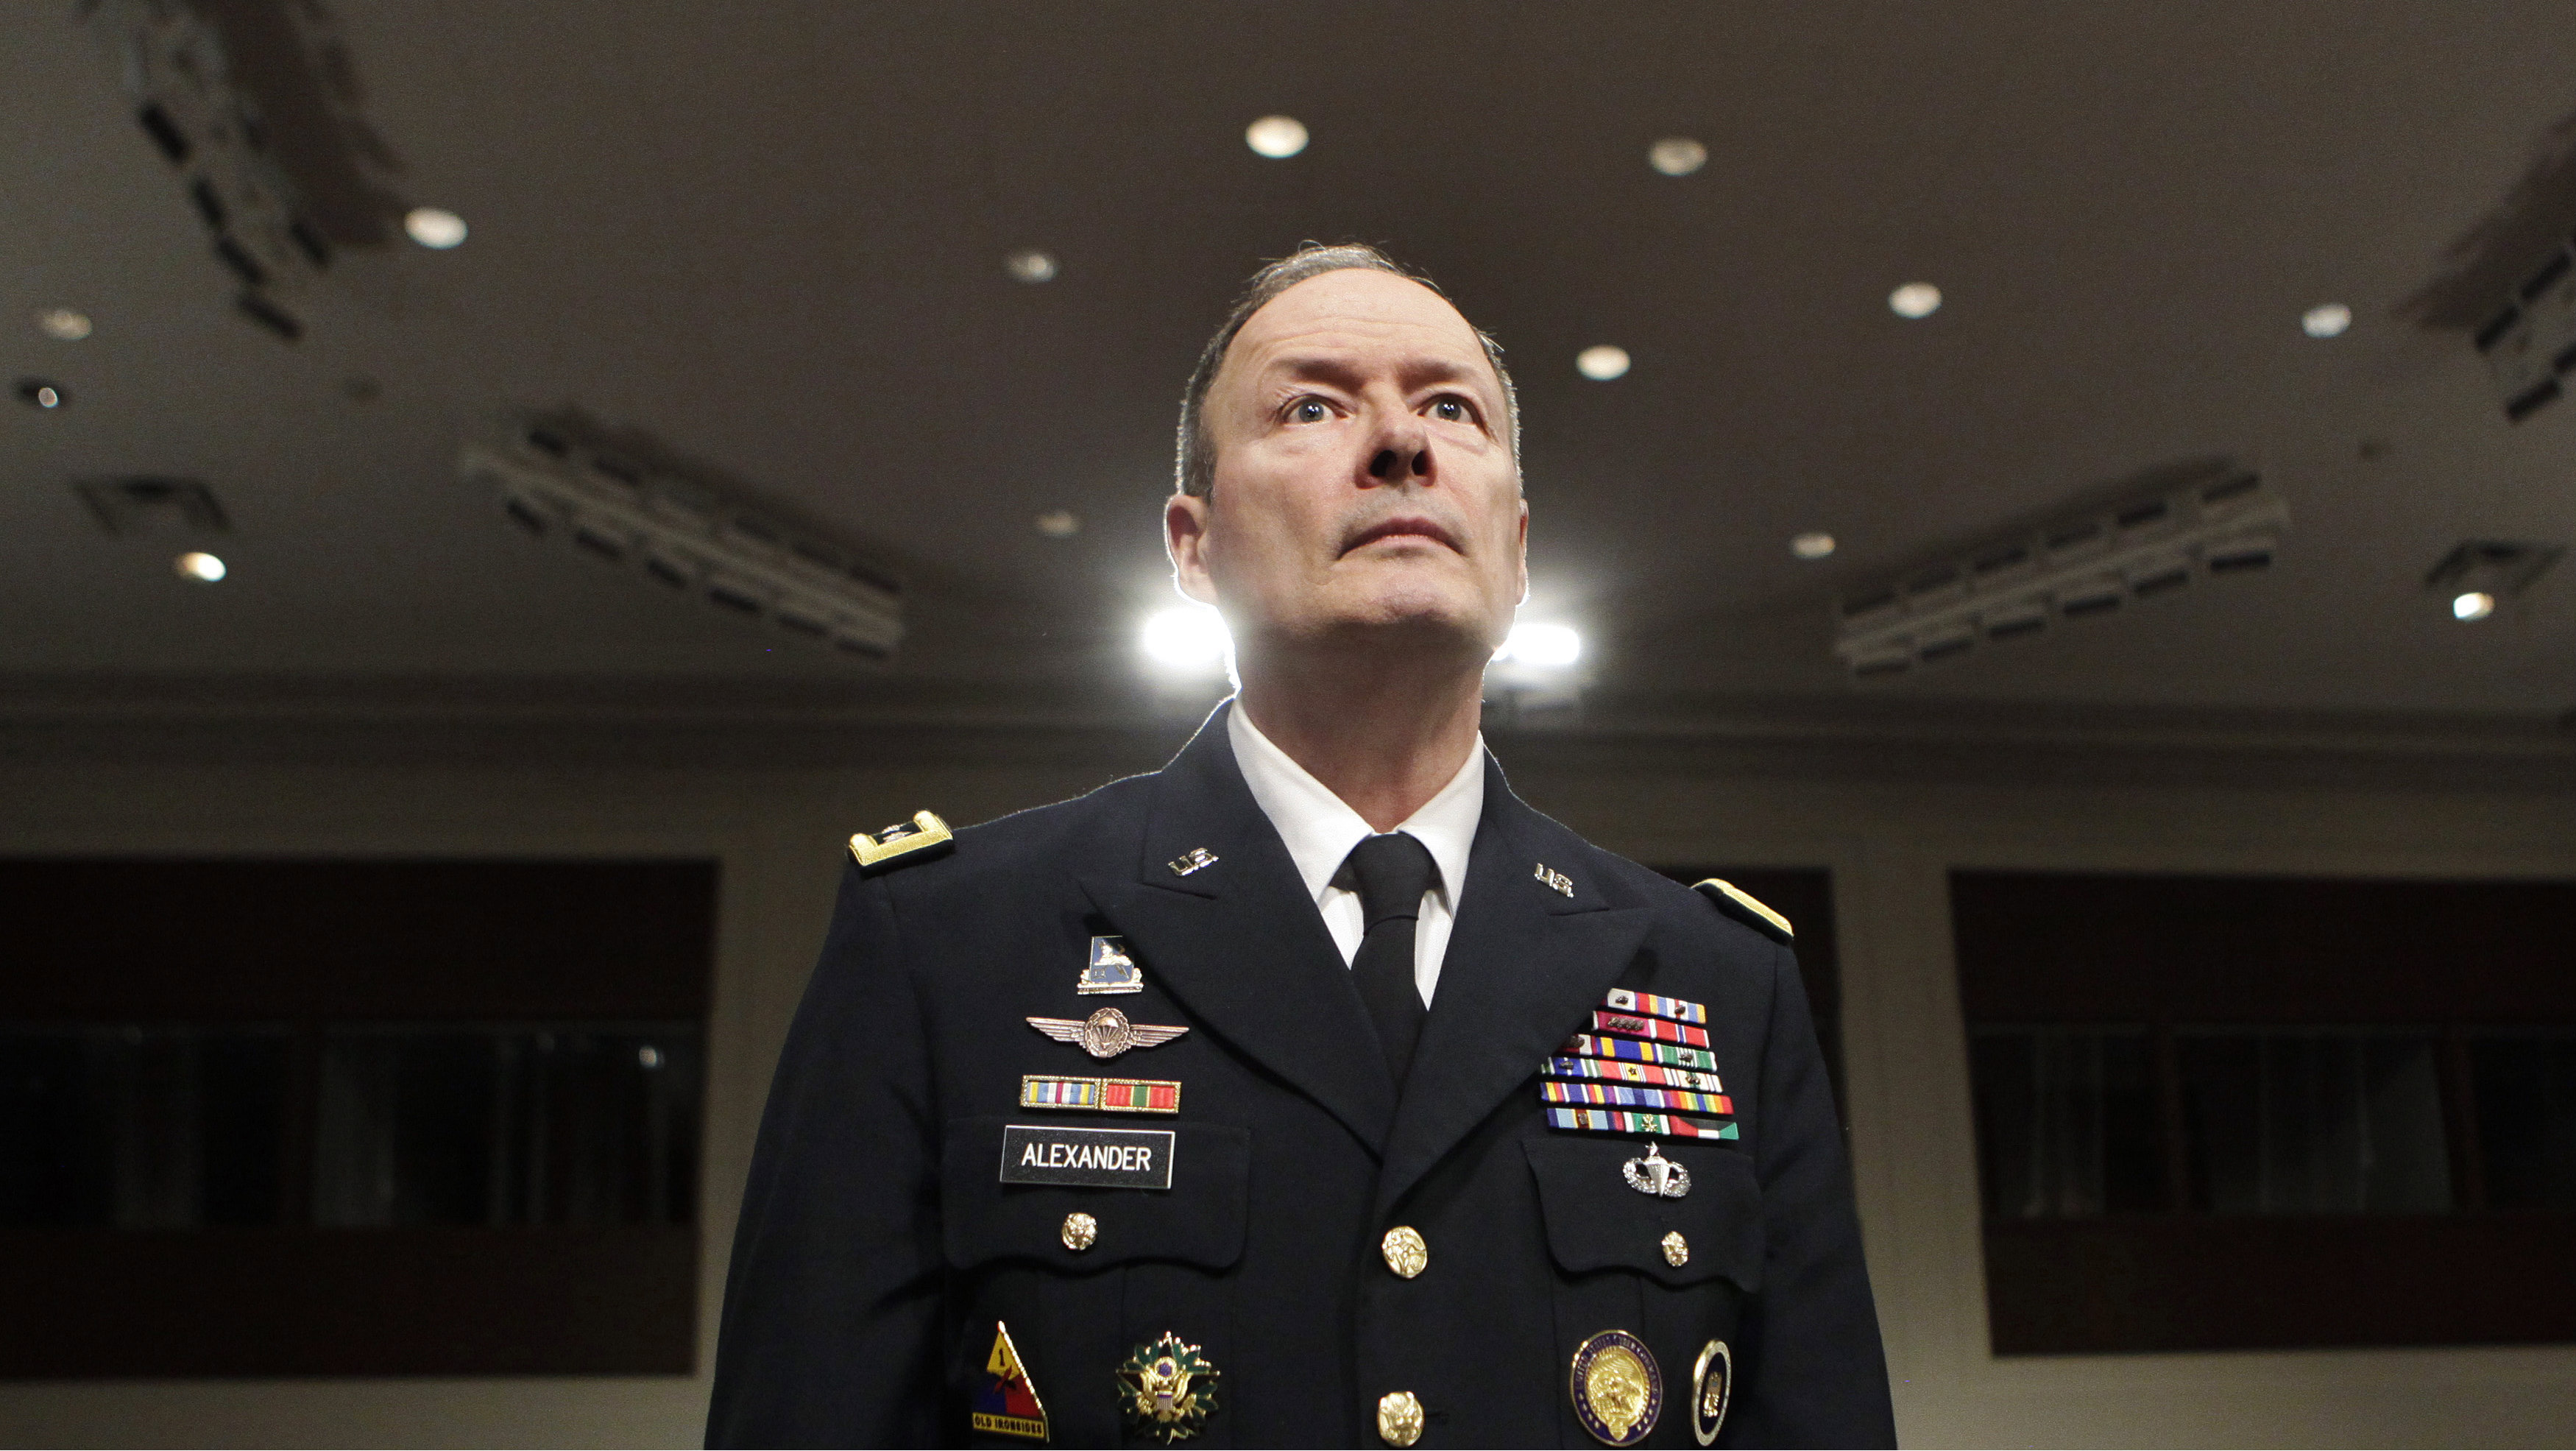 General Keith Alexander, commander of the U.S. Cyber Command, director of the National Security Agency (NSA) and chief of the Central Security Service (CSS), arrives at the Senate Appropriations Committee hearing on Cybersecurity: Preparing for and Responding to the Enduring Threat, on Capitol Hill in Washington June 12, 2013.